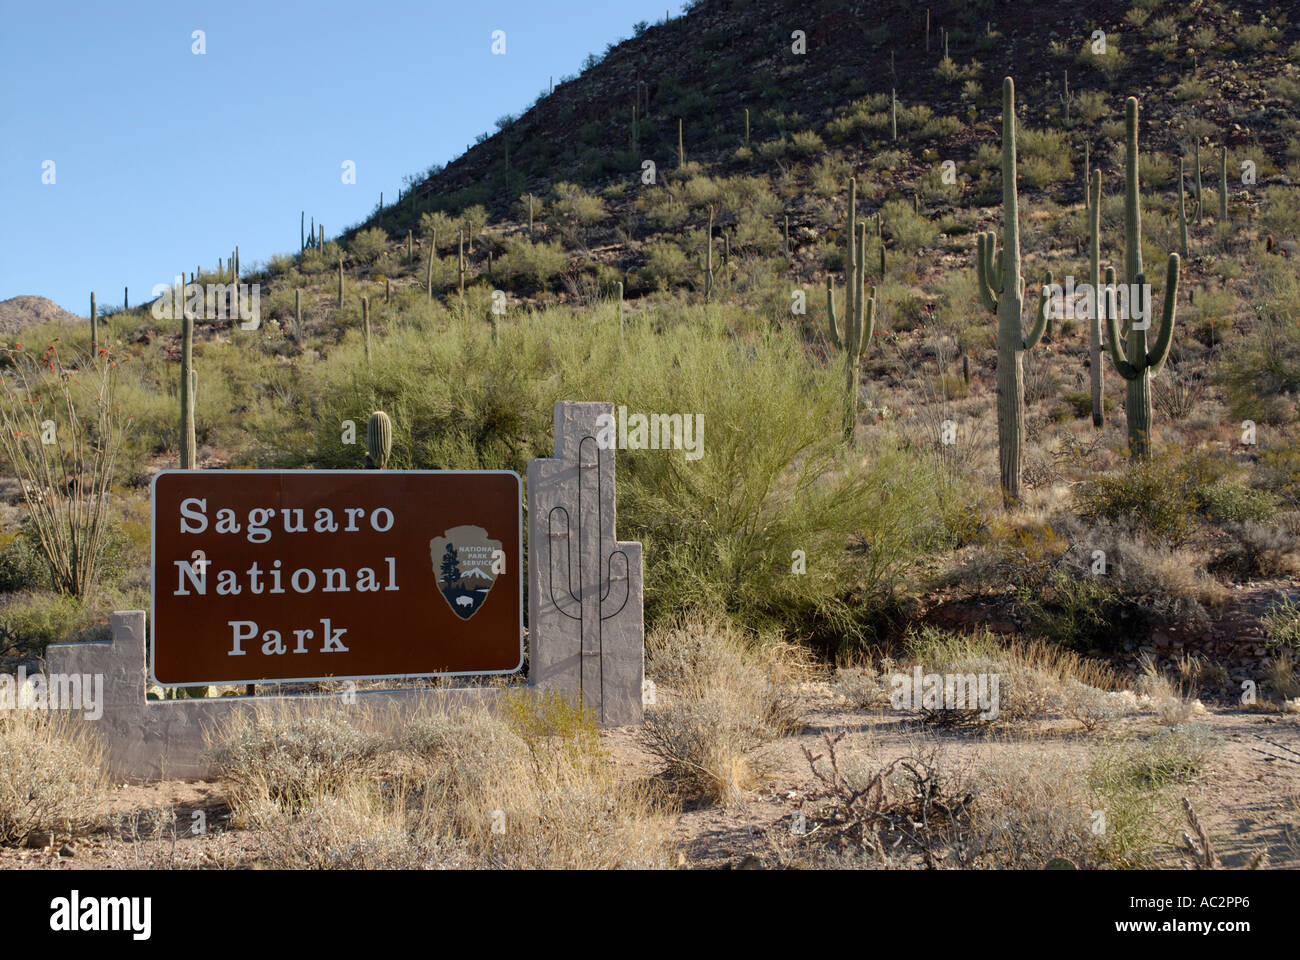 Entrance sign for Saguaro National Park, Arizona, USA, with cacti in background - Stock Image